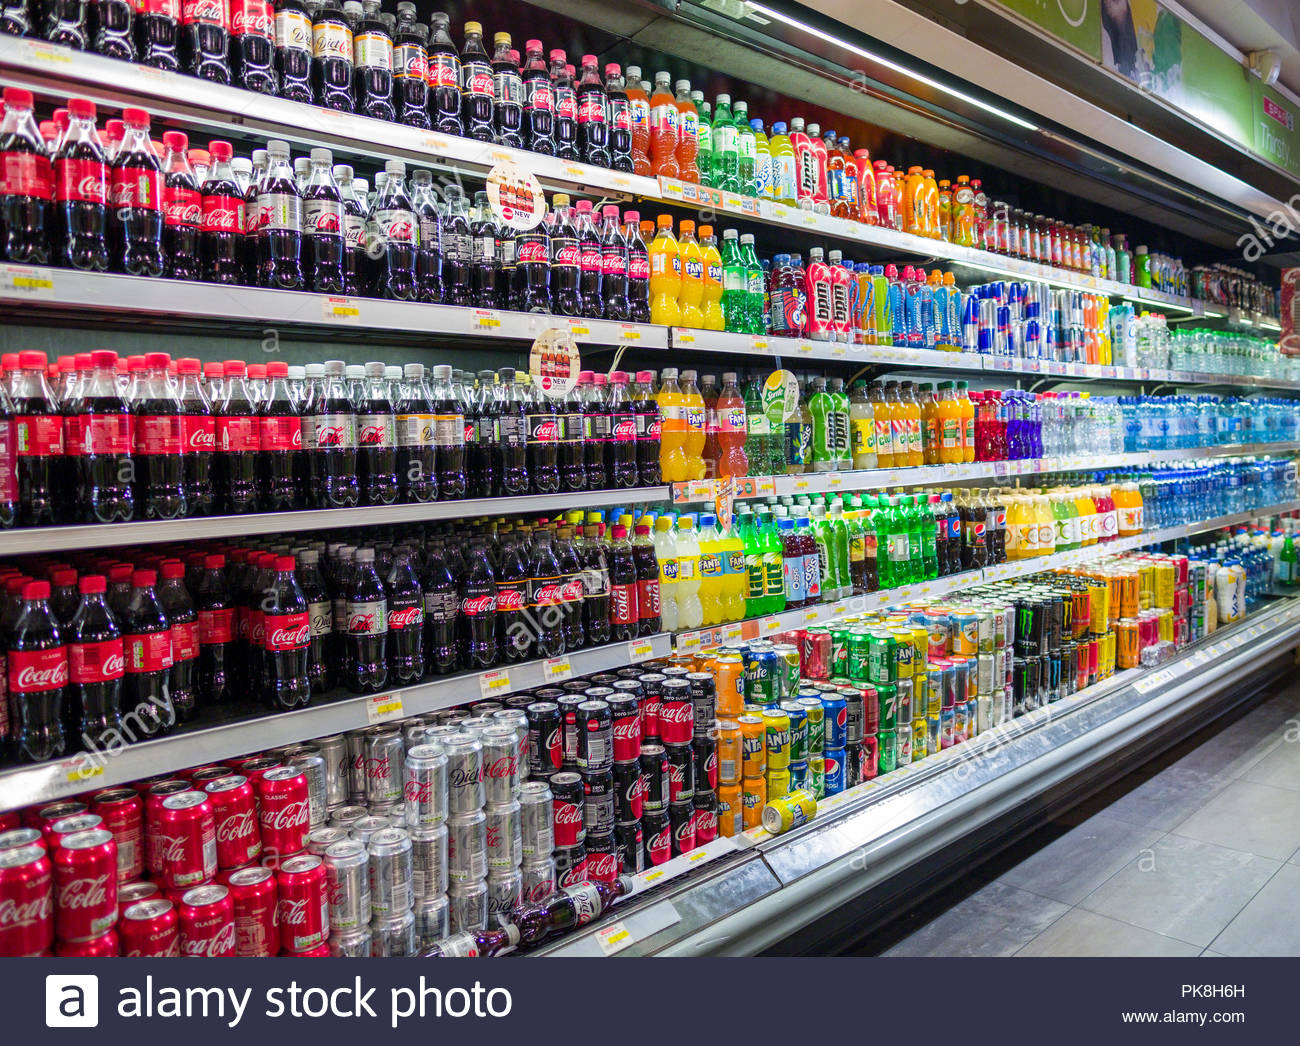 Large selection of refrigerated soft drinks in bottles and aluminum cans on sale in Spar convenience retail shop, Merrion Row, Dublin, Leinster, Irela - Stock Image